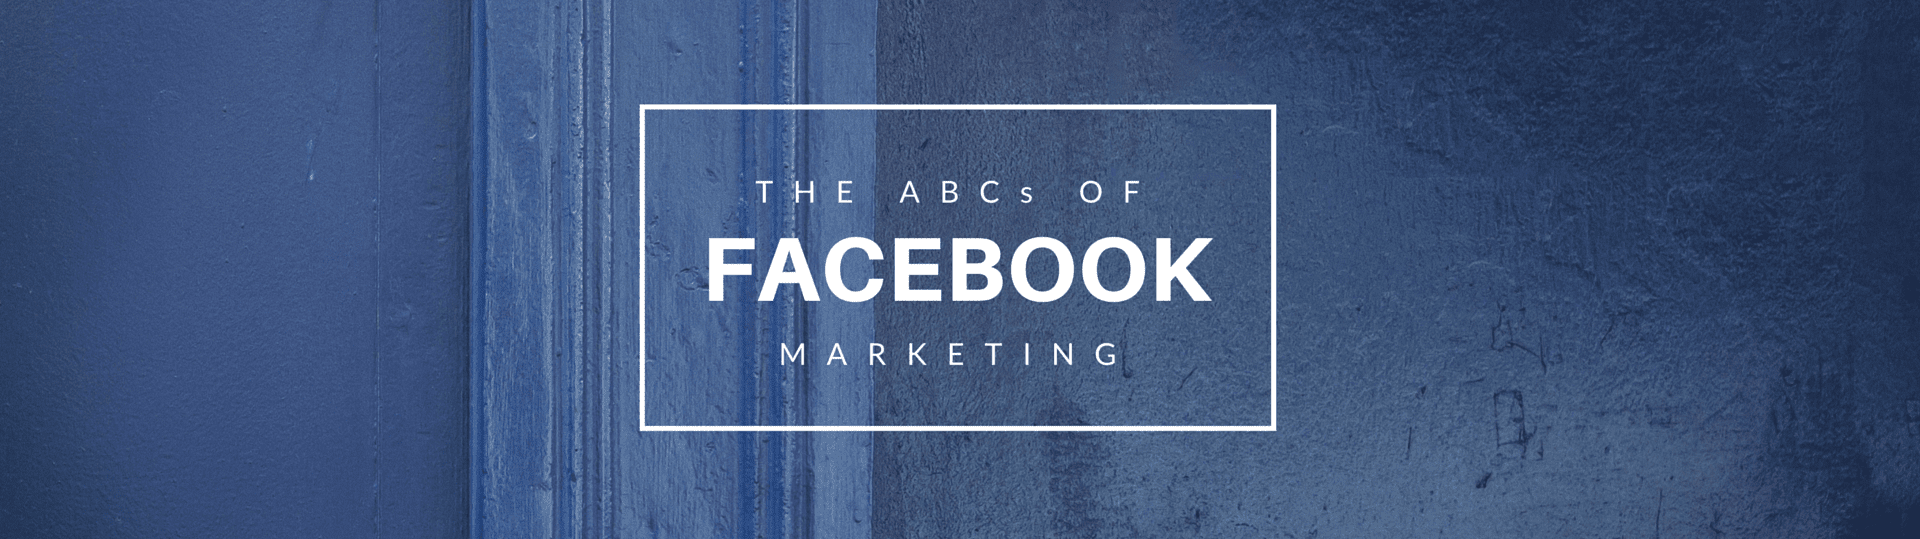 Facebook Marketing Main Image